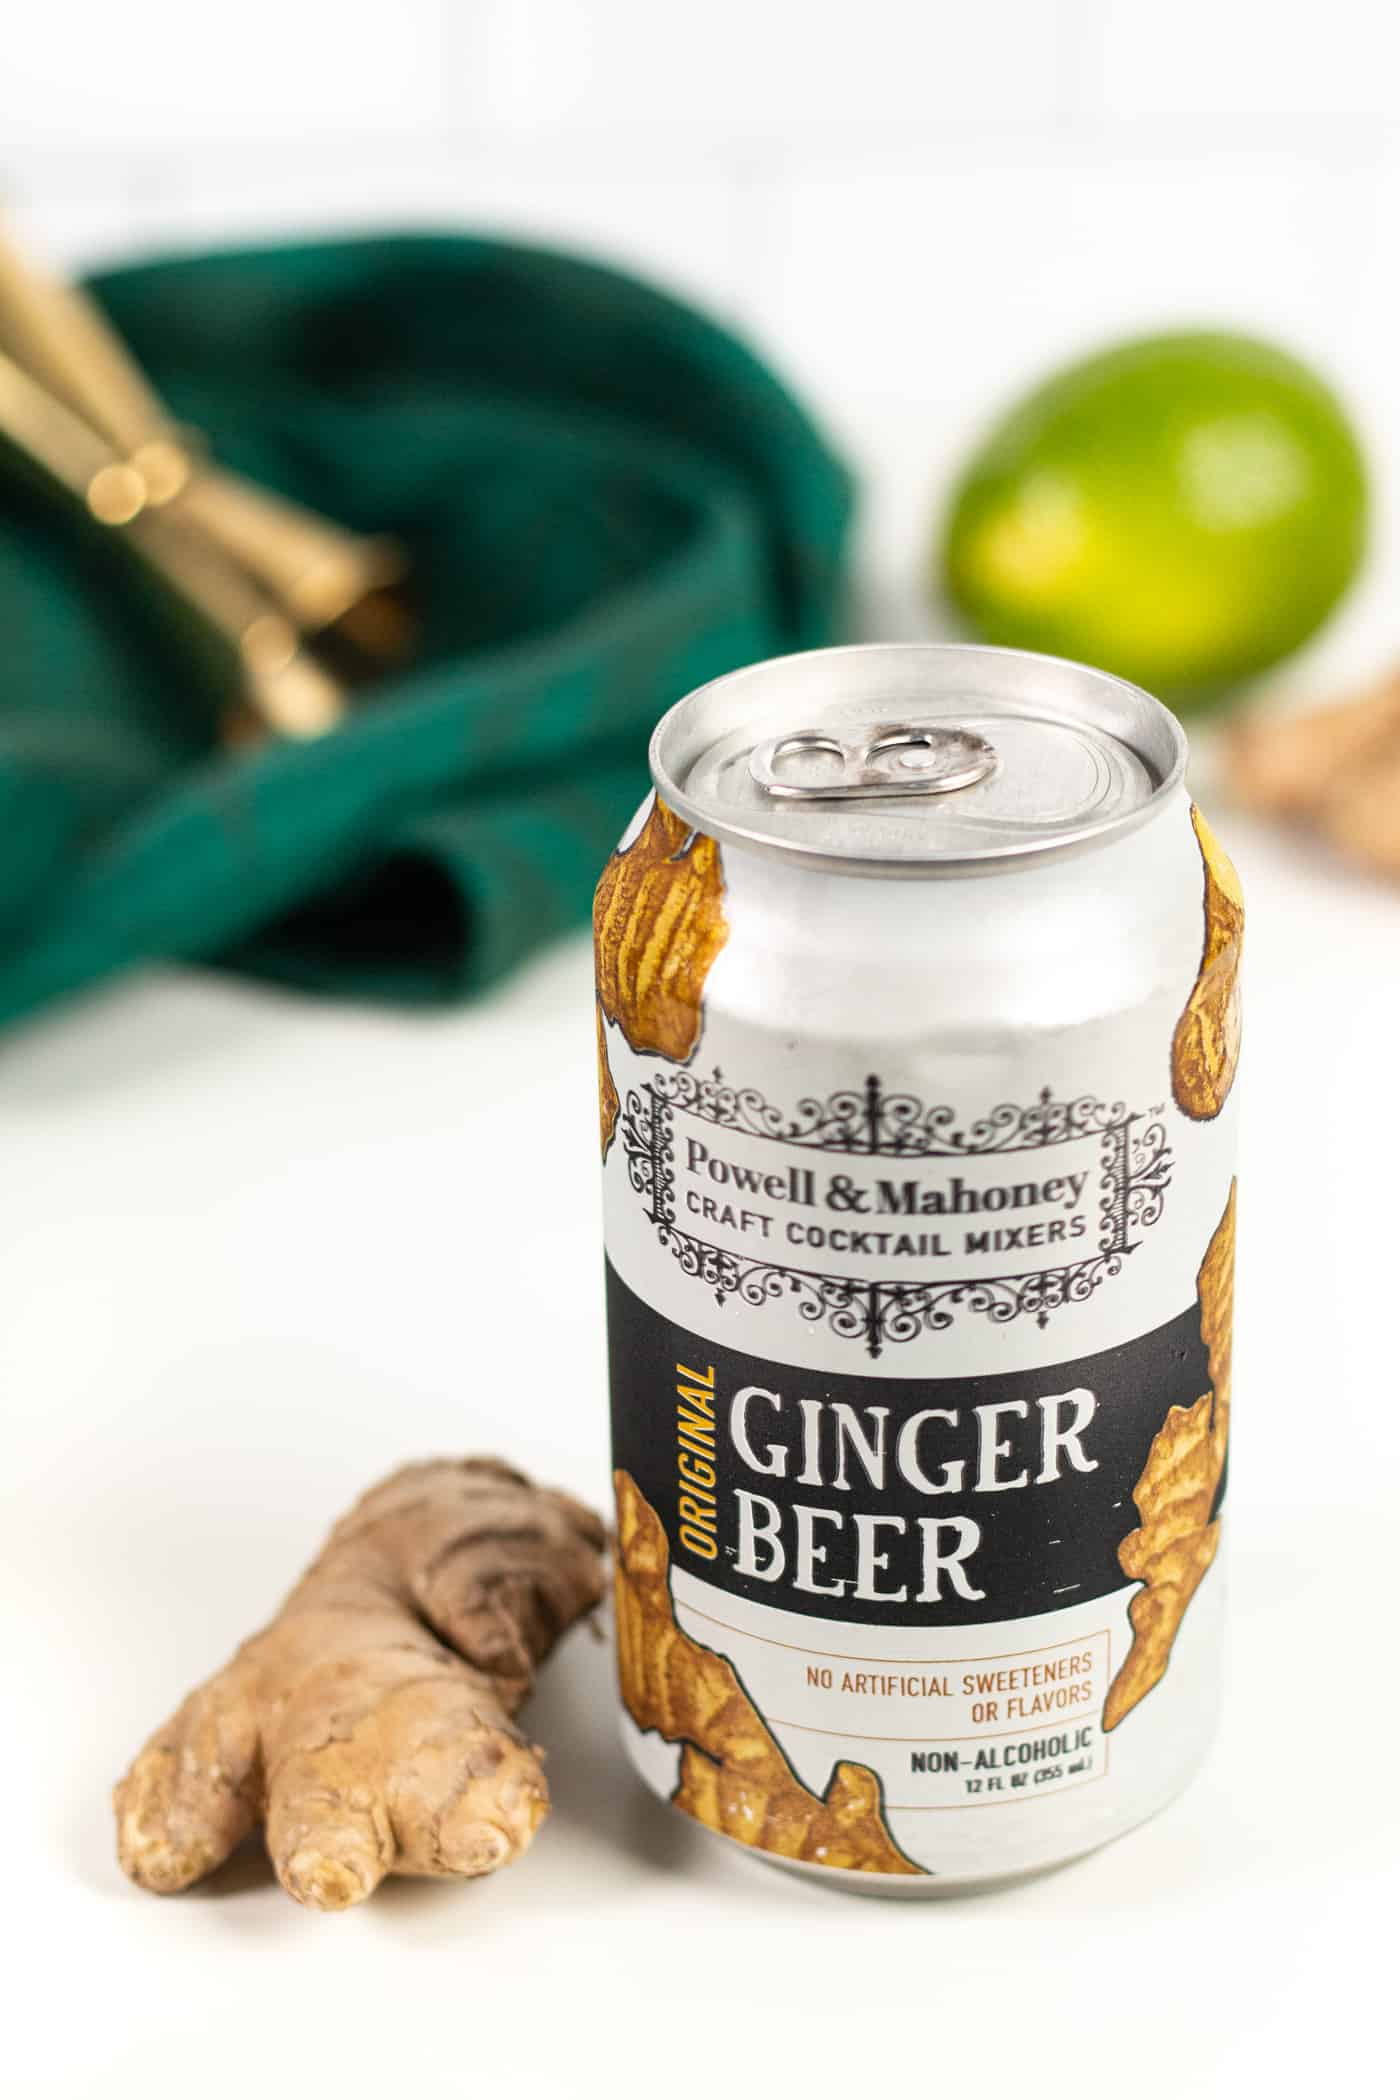 a powell & mahoney ginger beer can with a green tea towel